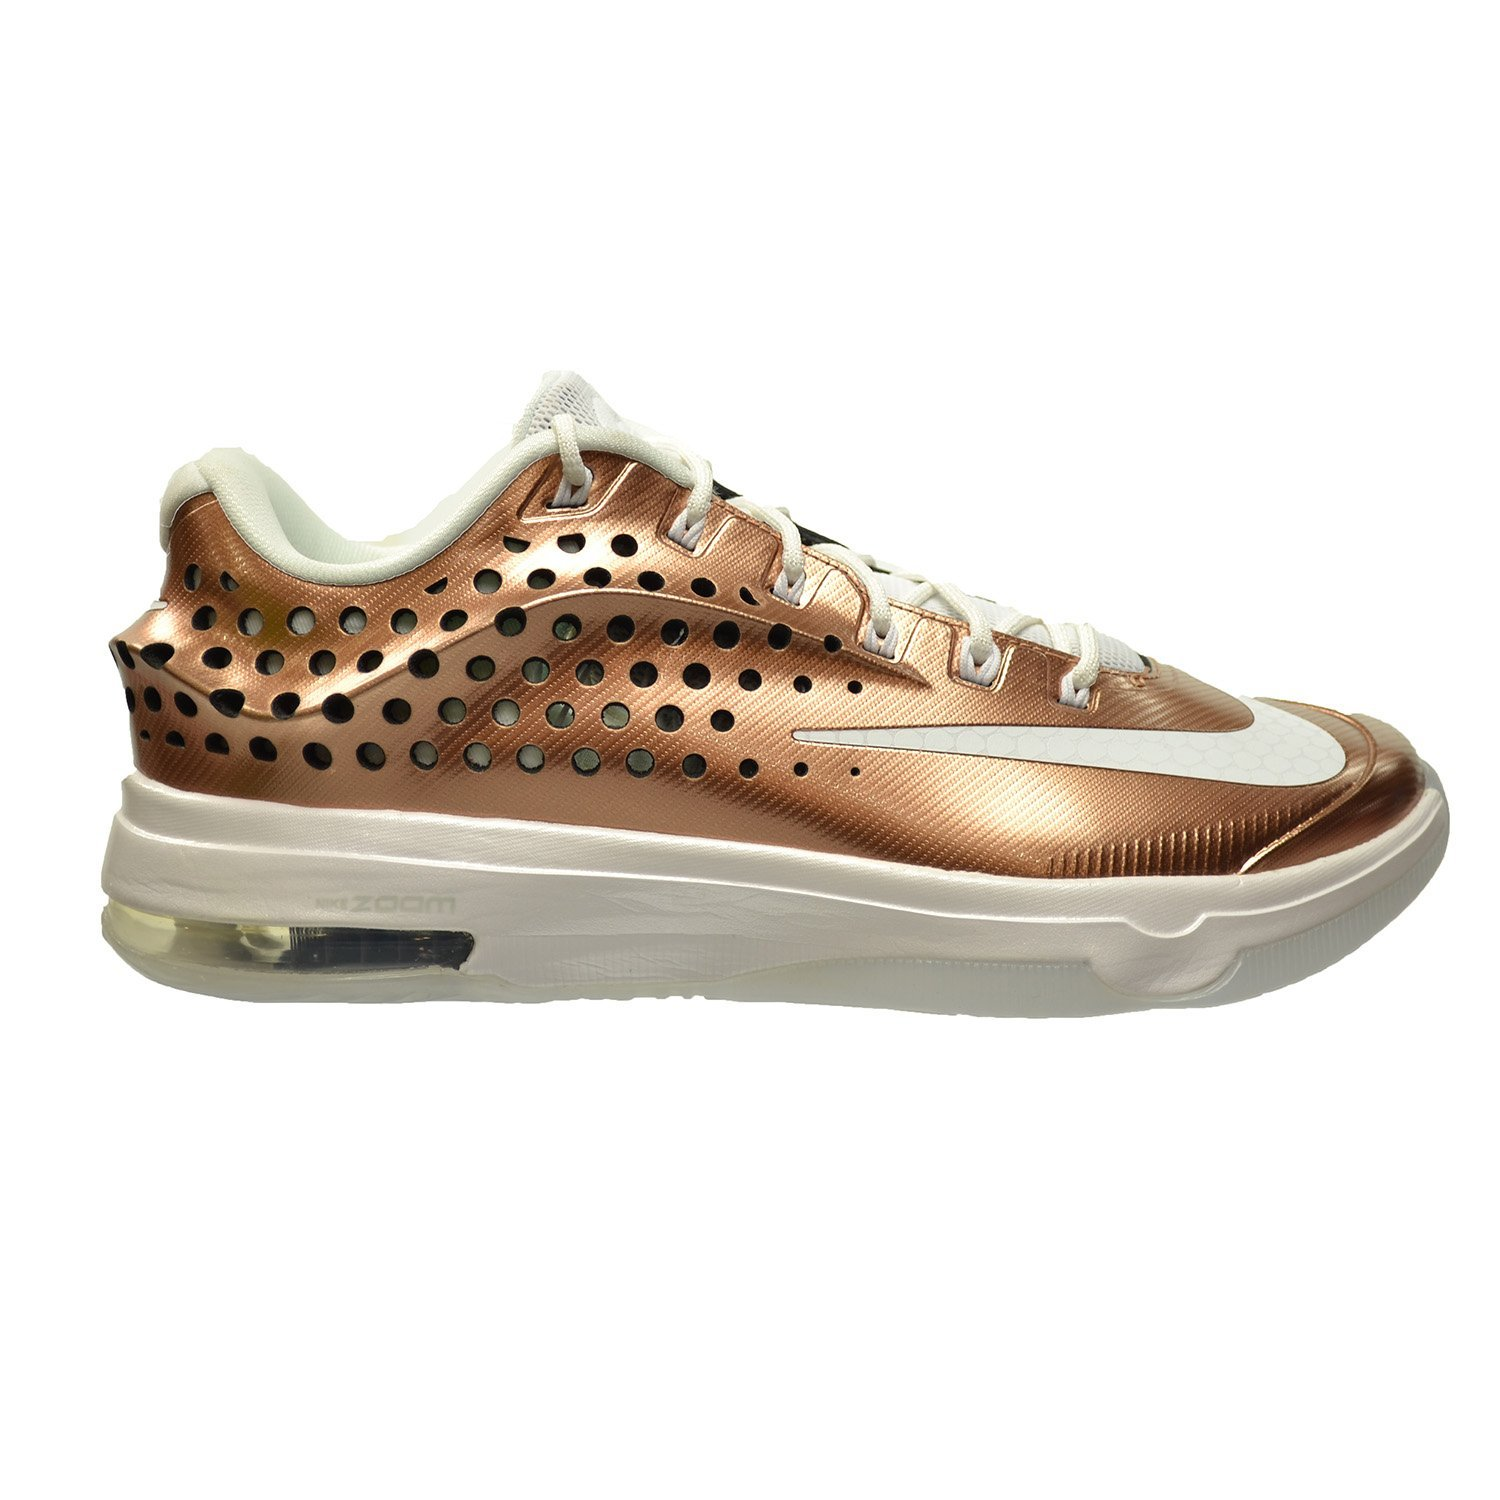 c7c3e1edc49f Get Quotations · Nike KD VII (7) Elite Limited